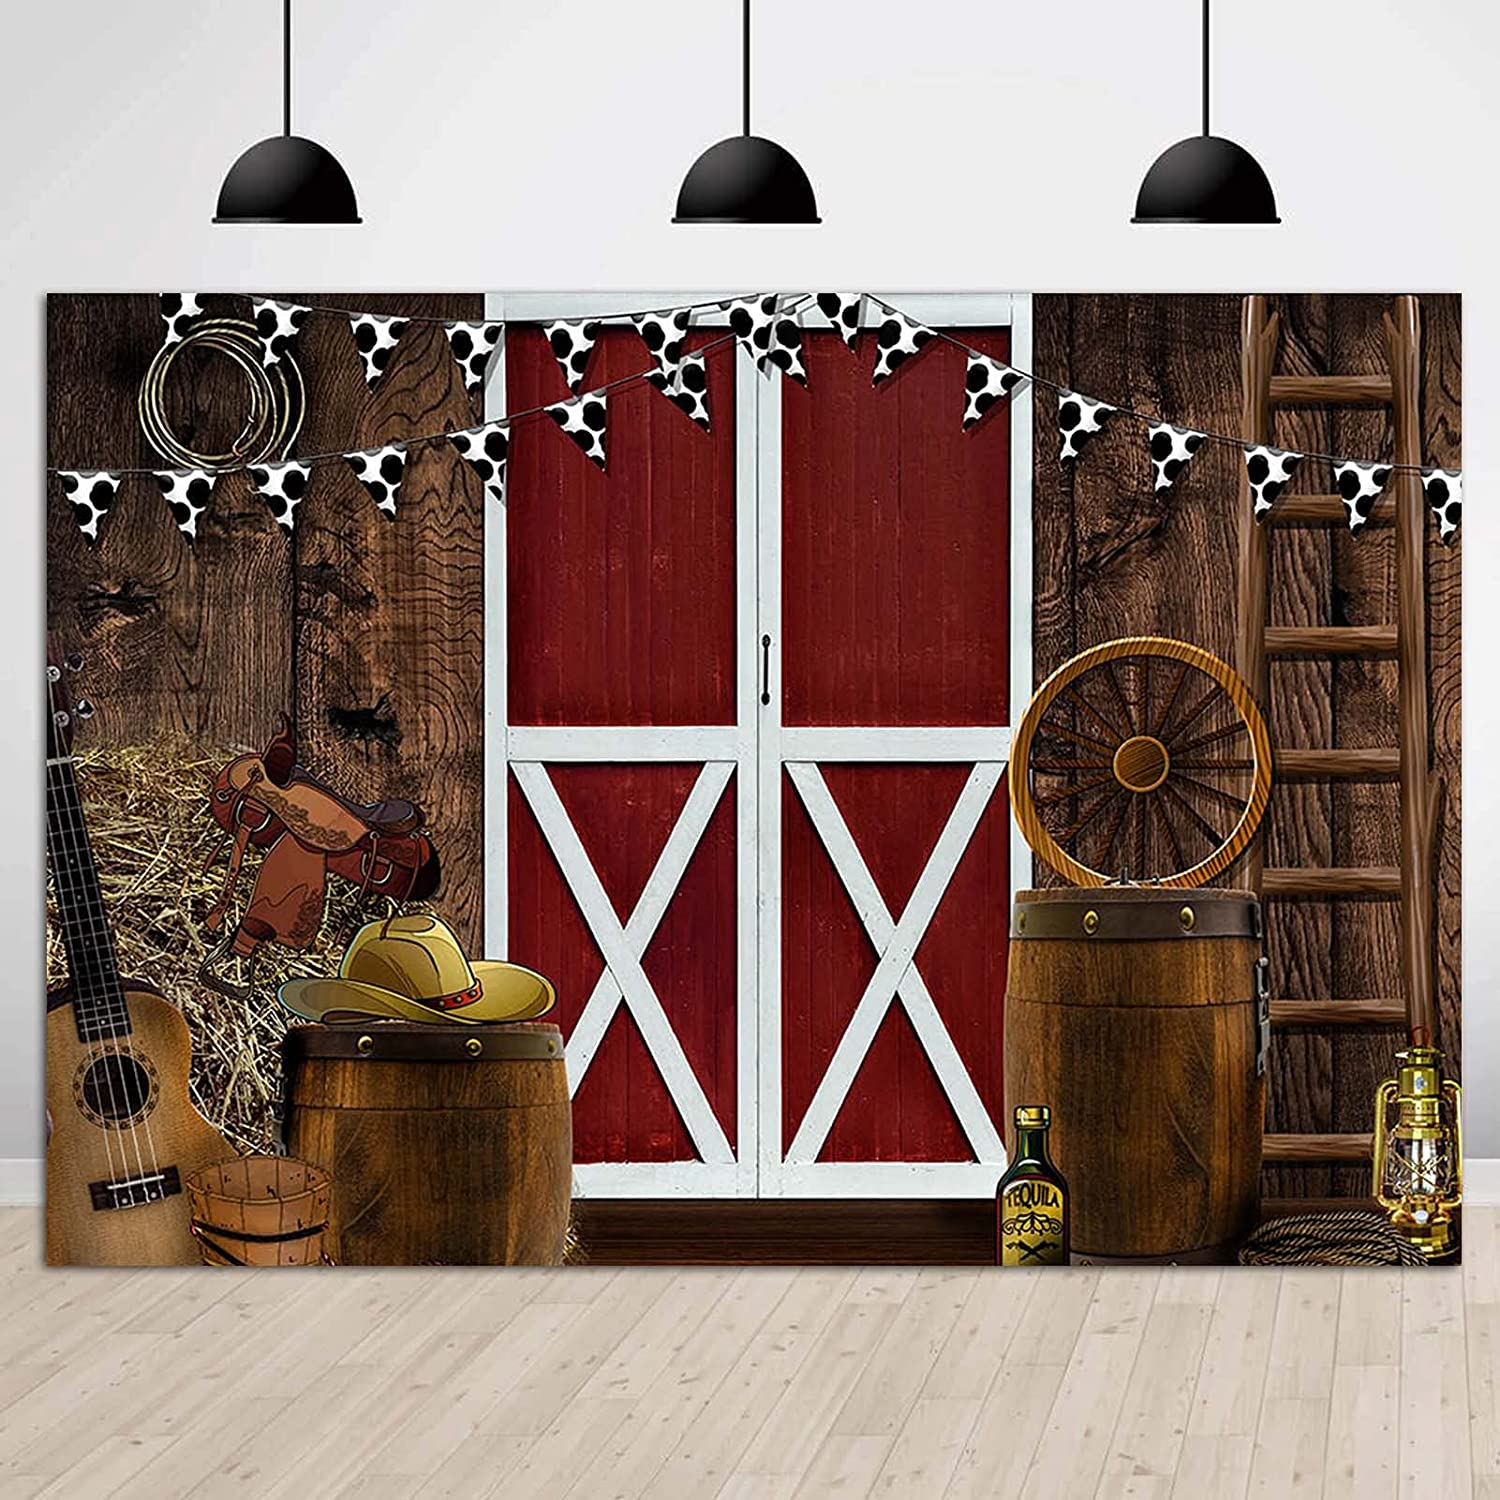 Vinyl 7x5ft Western Backdrop for Photography Photoshoot Supplies Farmhouse Barn Door West Cowboy Scene Photo Background Kids Western Birthday Party Decor Photo Booths